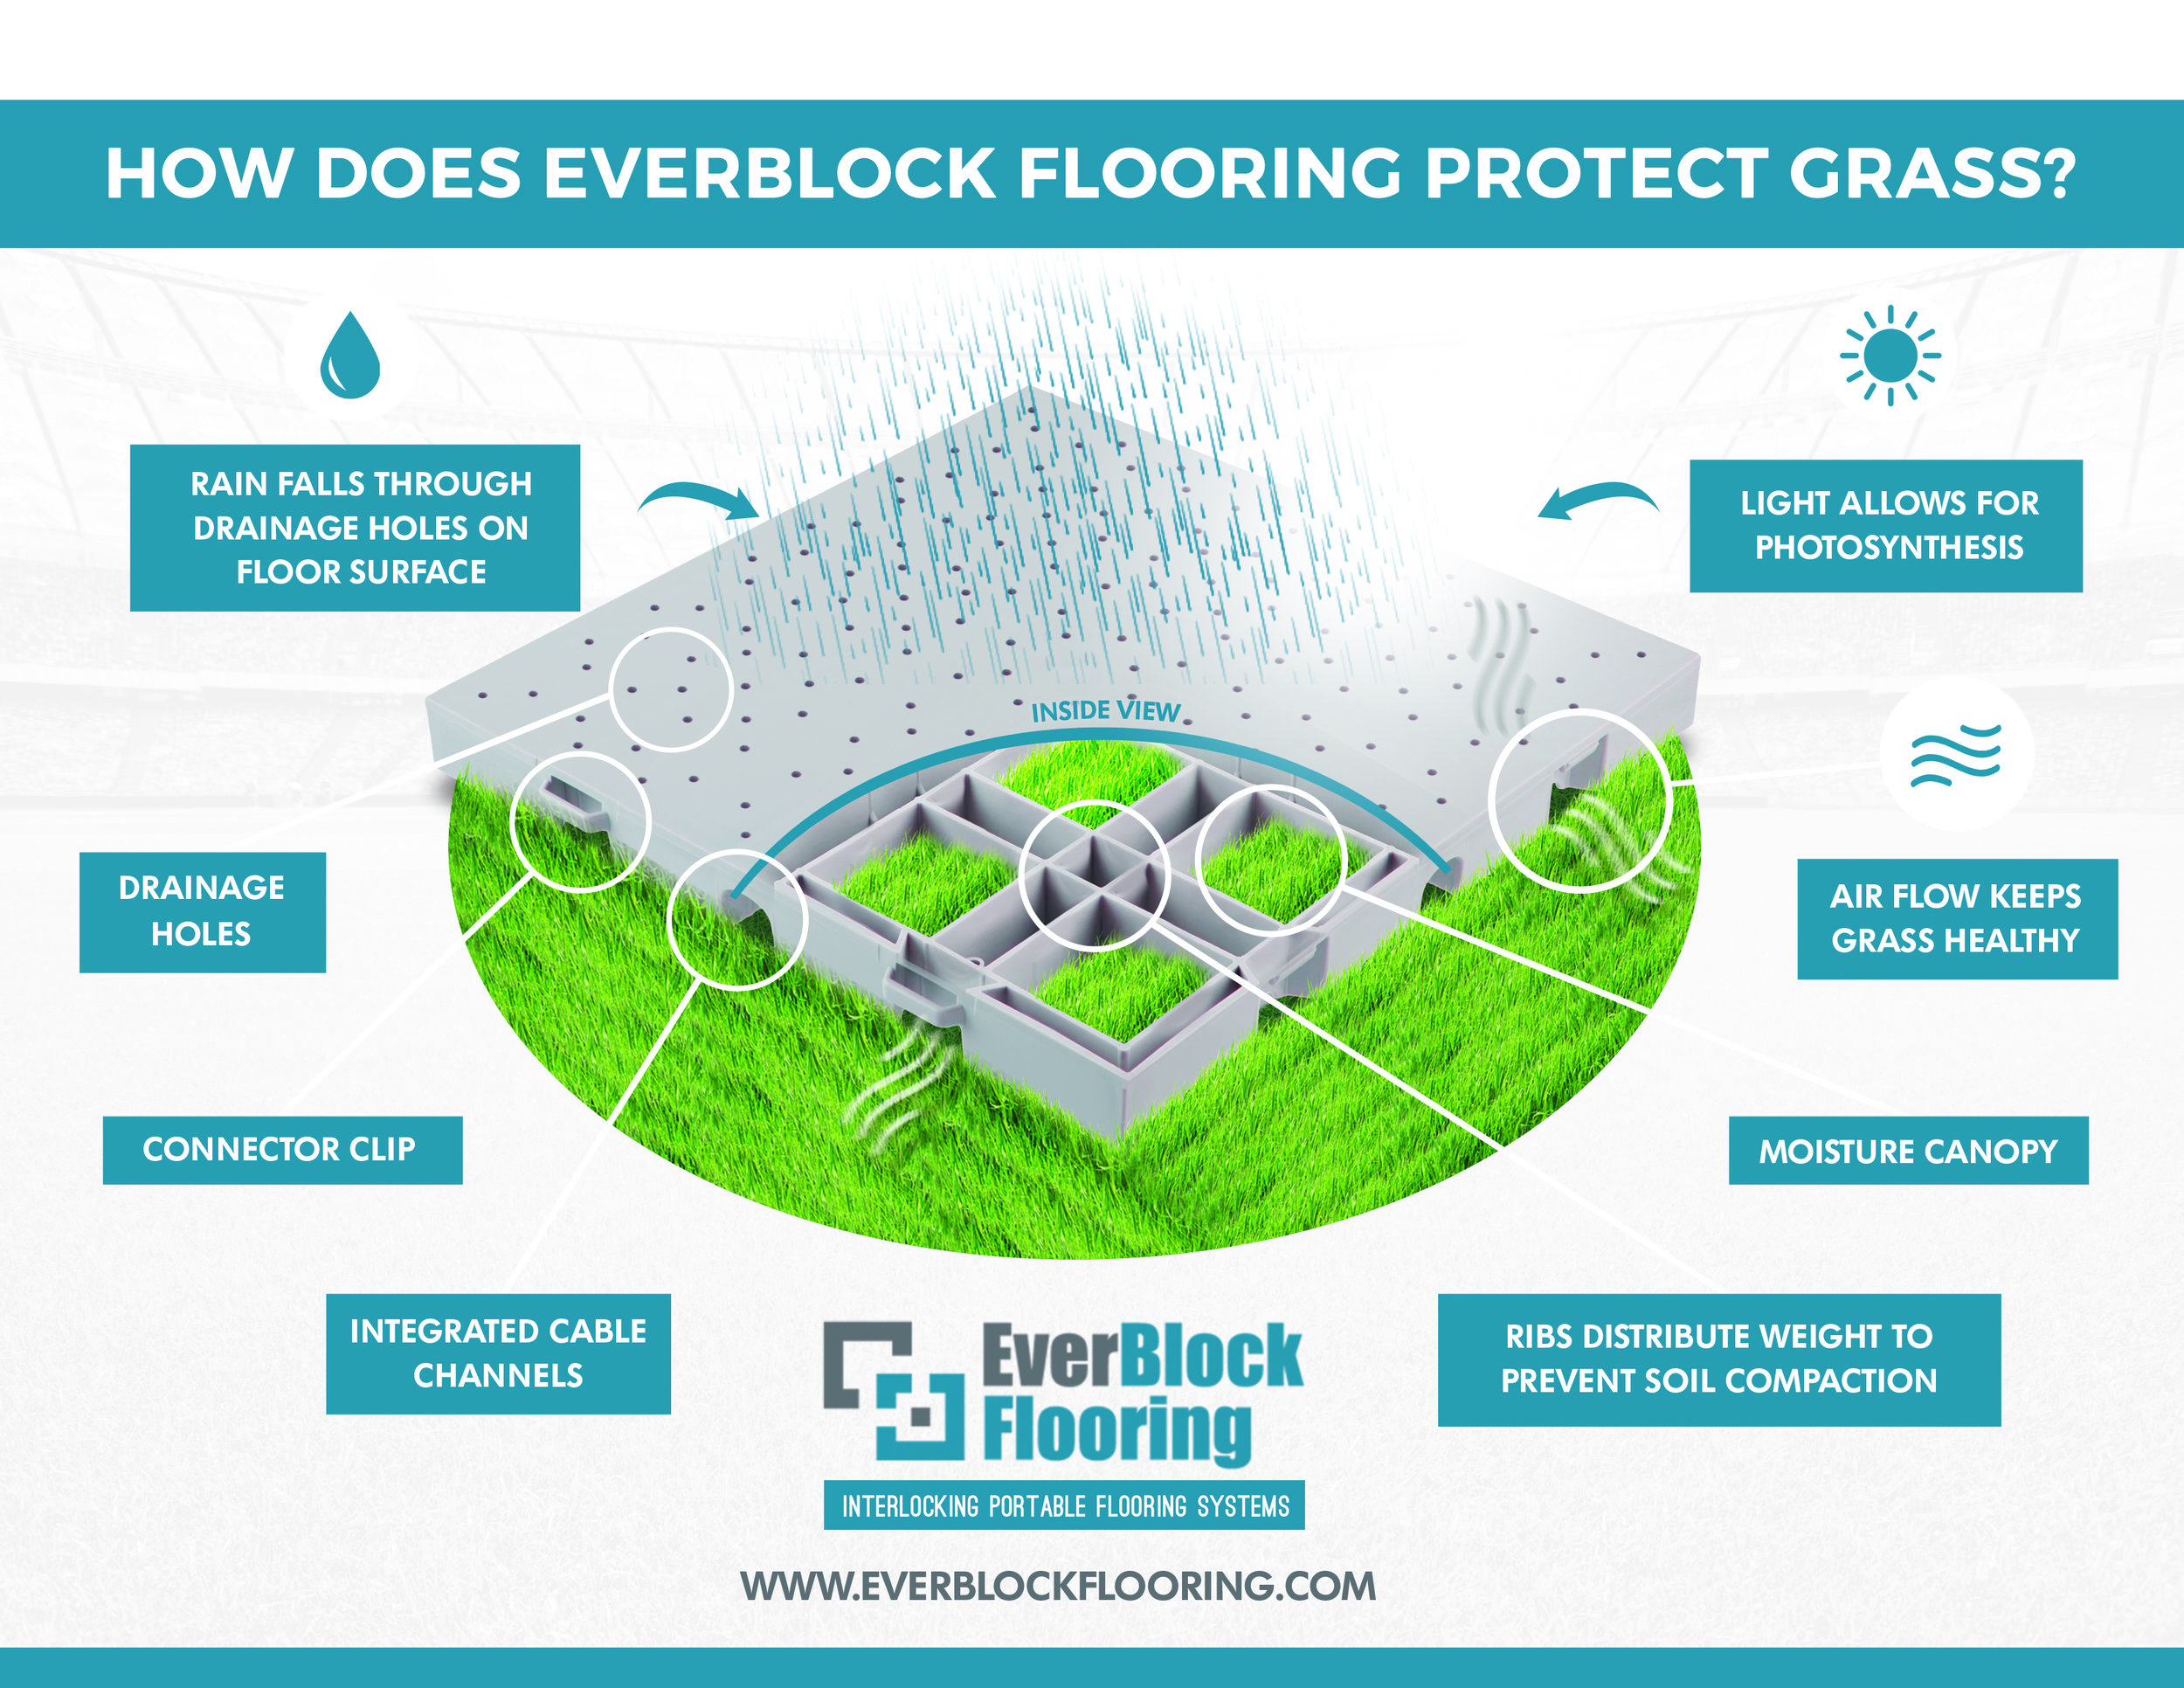 everblock flooring stadium turf protection grass protection